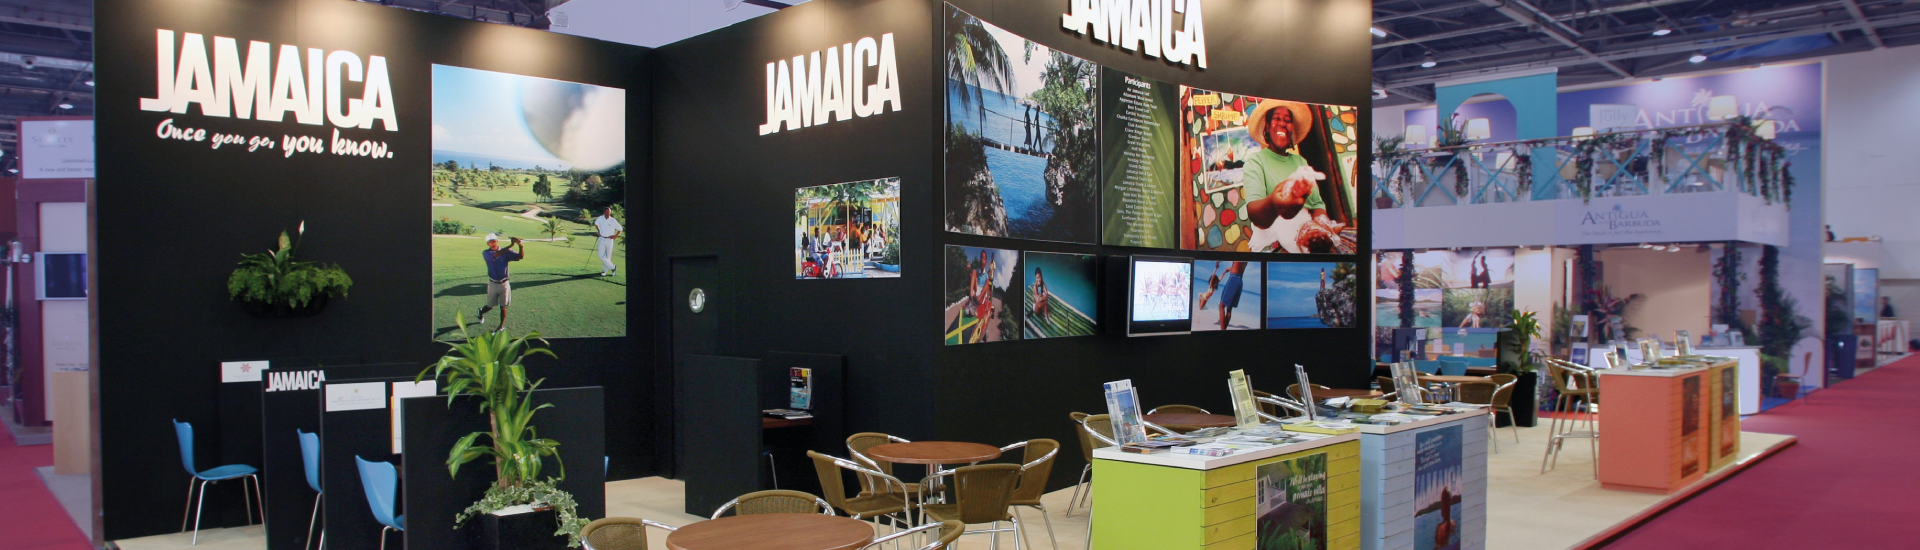 Jamaica - Bespoke Exhibition Stand - Imagine Events